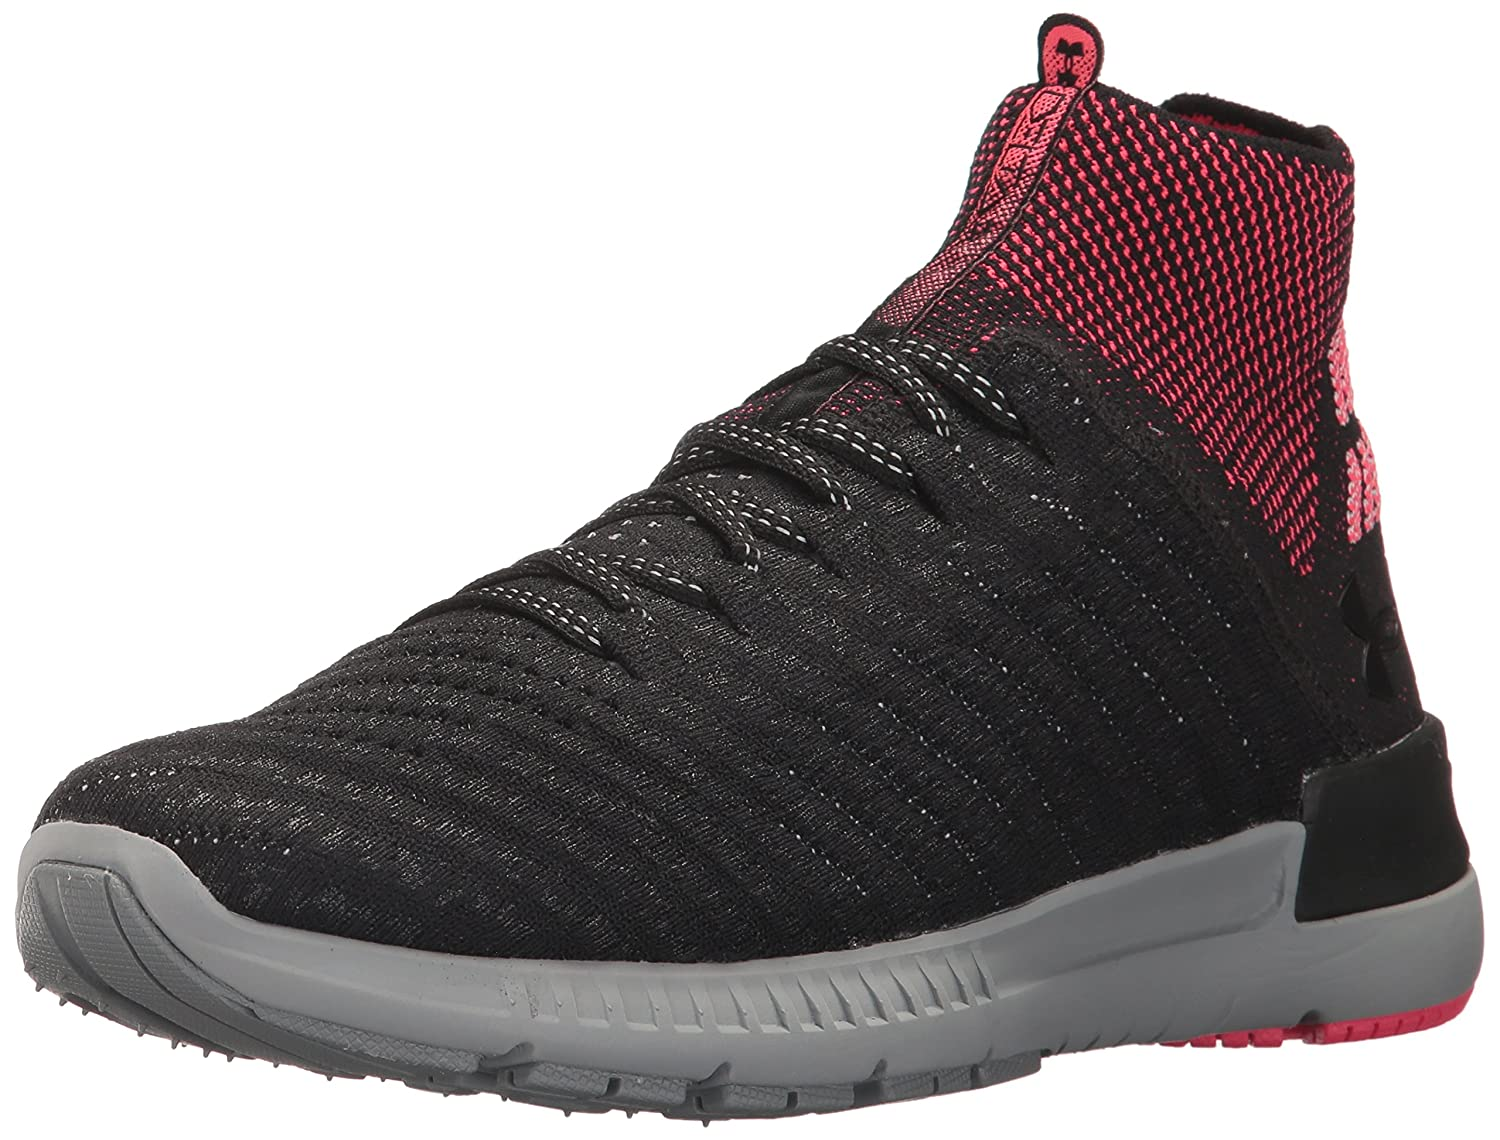 Under Armour Highlight Delta 2 Damen Turnschuhe Schwarz